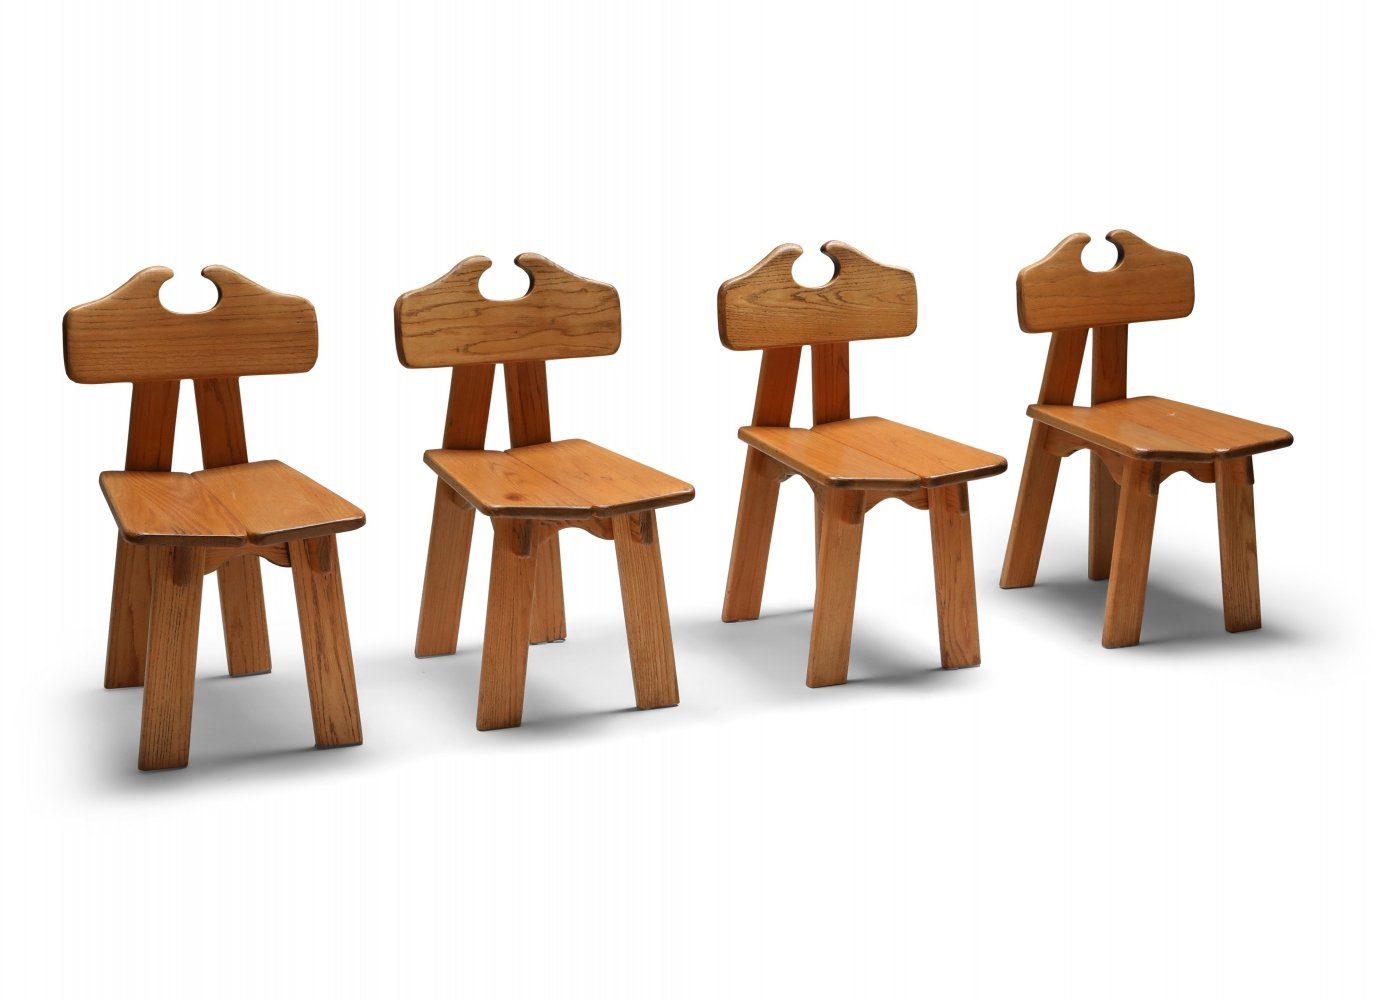 Set of 4 Spanish brutalist chairs in solid oak, 1970